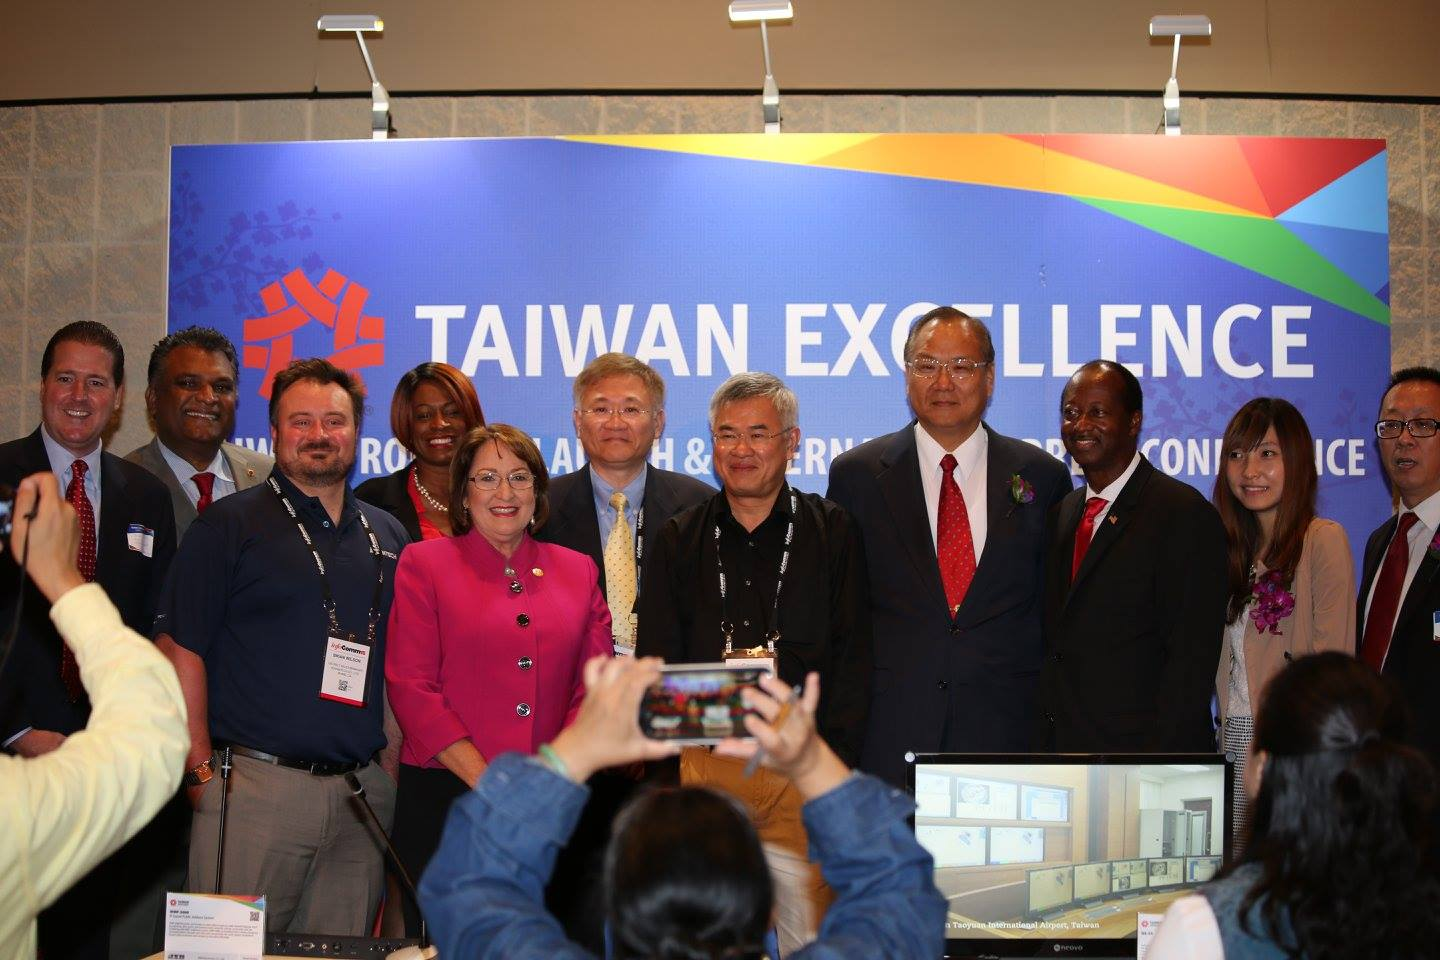 Taiwan Excellence's Products Launch and International Press Conference at InfoCOmm 2015 hosted 70 guests and four award-winning companies. (l-r) Creative Village visionary Craig Ustler, Orange County Property Appraiser Rick Singh, Advantech Sales Manager Brian Wilson, Commissioner Regina Hill, Orange County Mayor Teresa Jacobs, AG Neovo Sales & Marketing Director David Meng, Chiayo VP Alwin Chin, TECO Director General Philip T.Y. Wang, Commissioner Samuel B. Ings, and BXB International Sales representative Stacy Chiang. Photo: J. Willie David III/Florida National News.